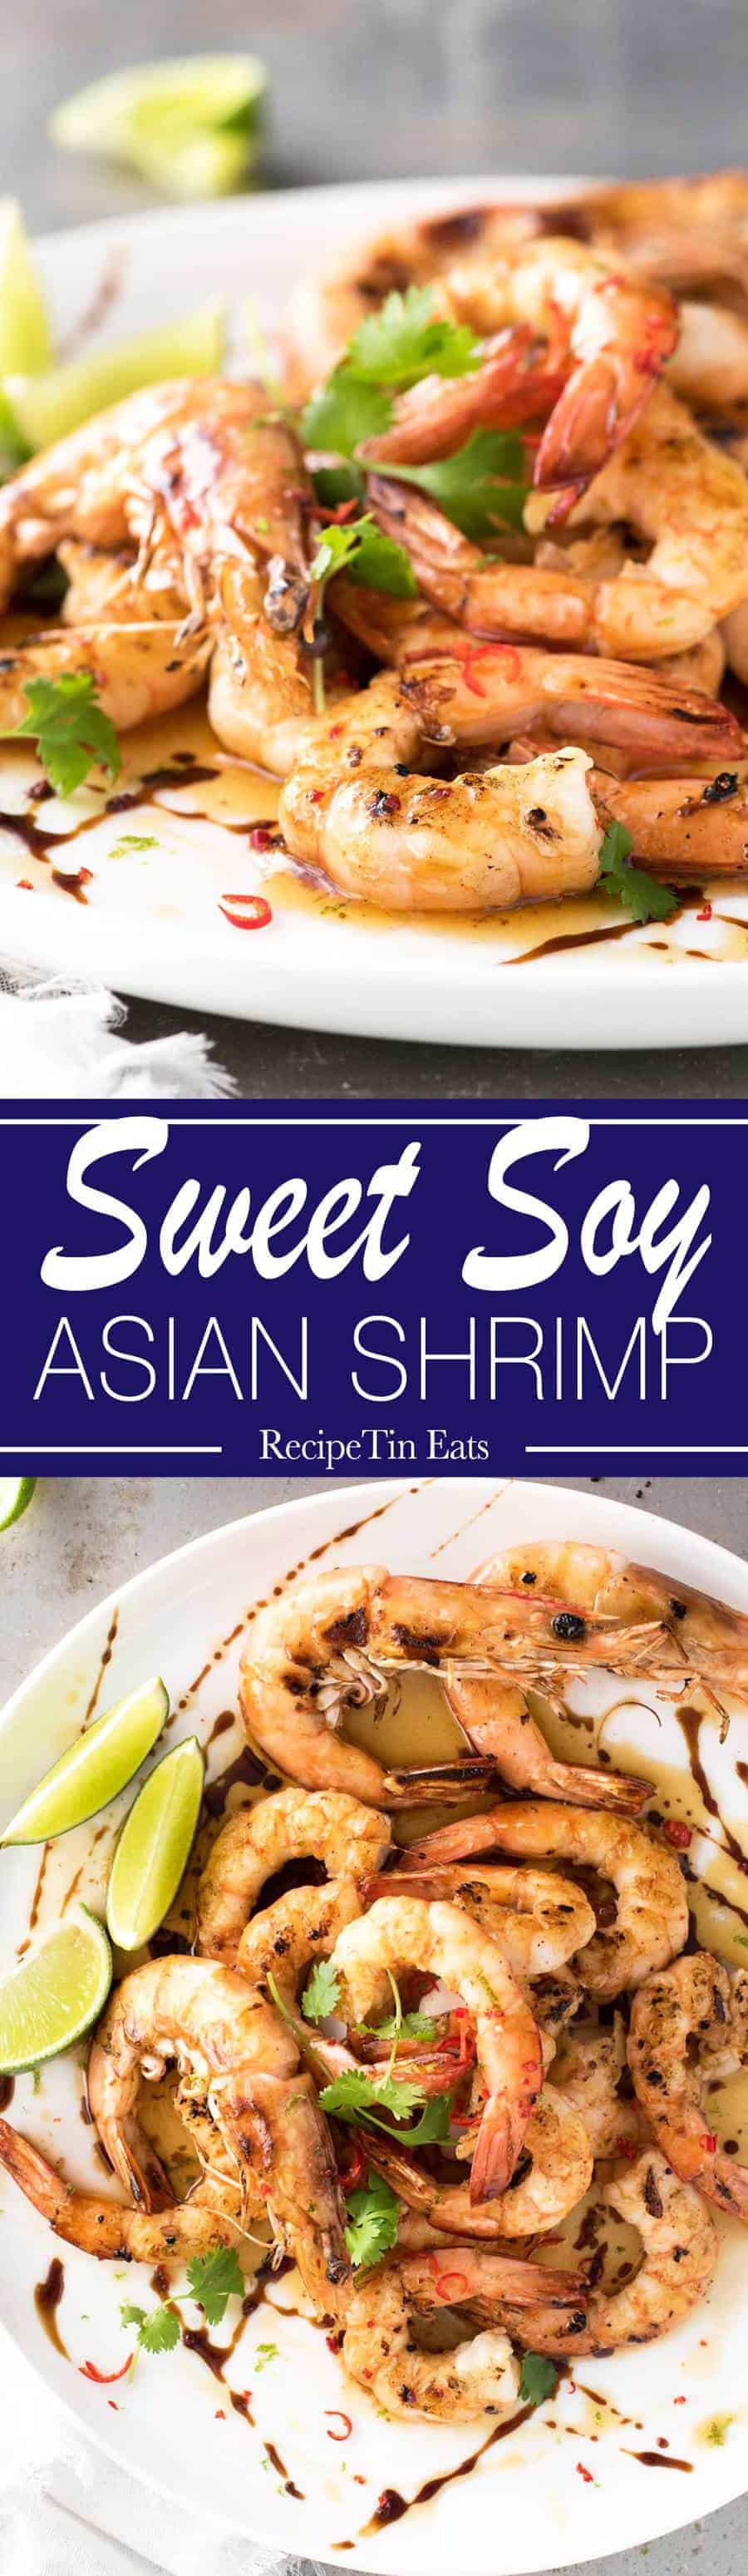 Sweet Soy Asian Shrimp   These are AMAZING!!! Browned butter with sweet soy is a KILLER COMBO!!!